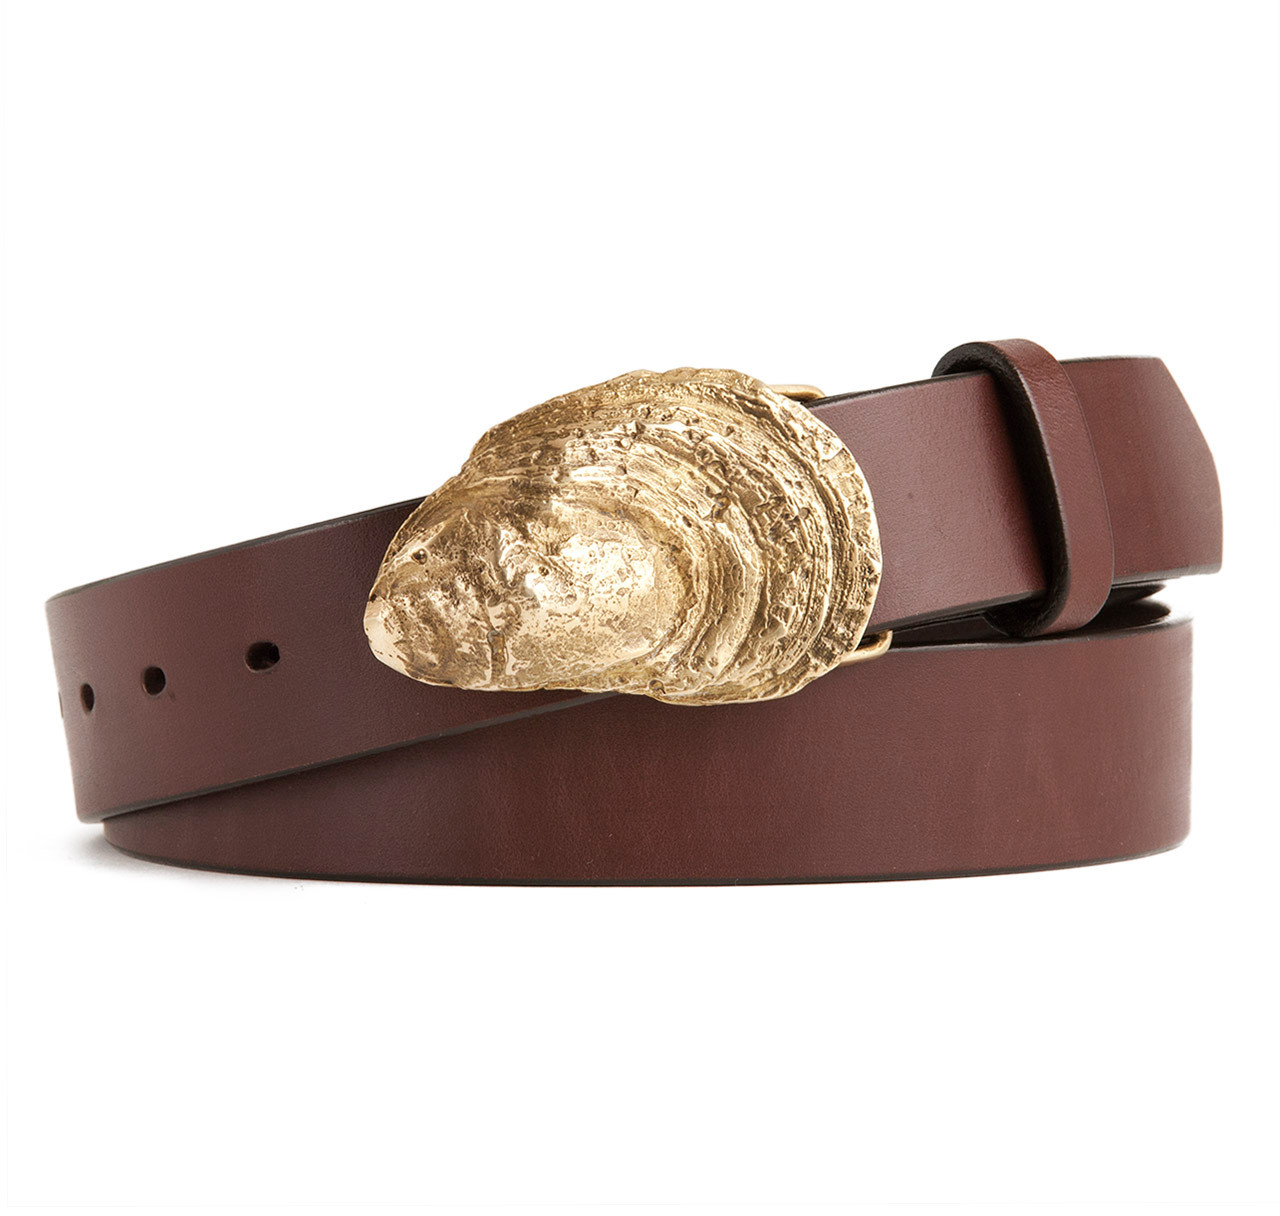 oyster shell buckle with brown leather belt sir s